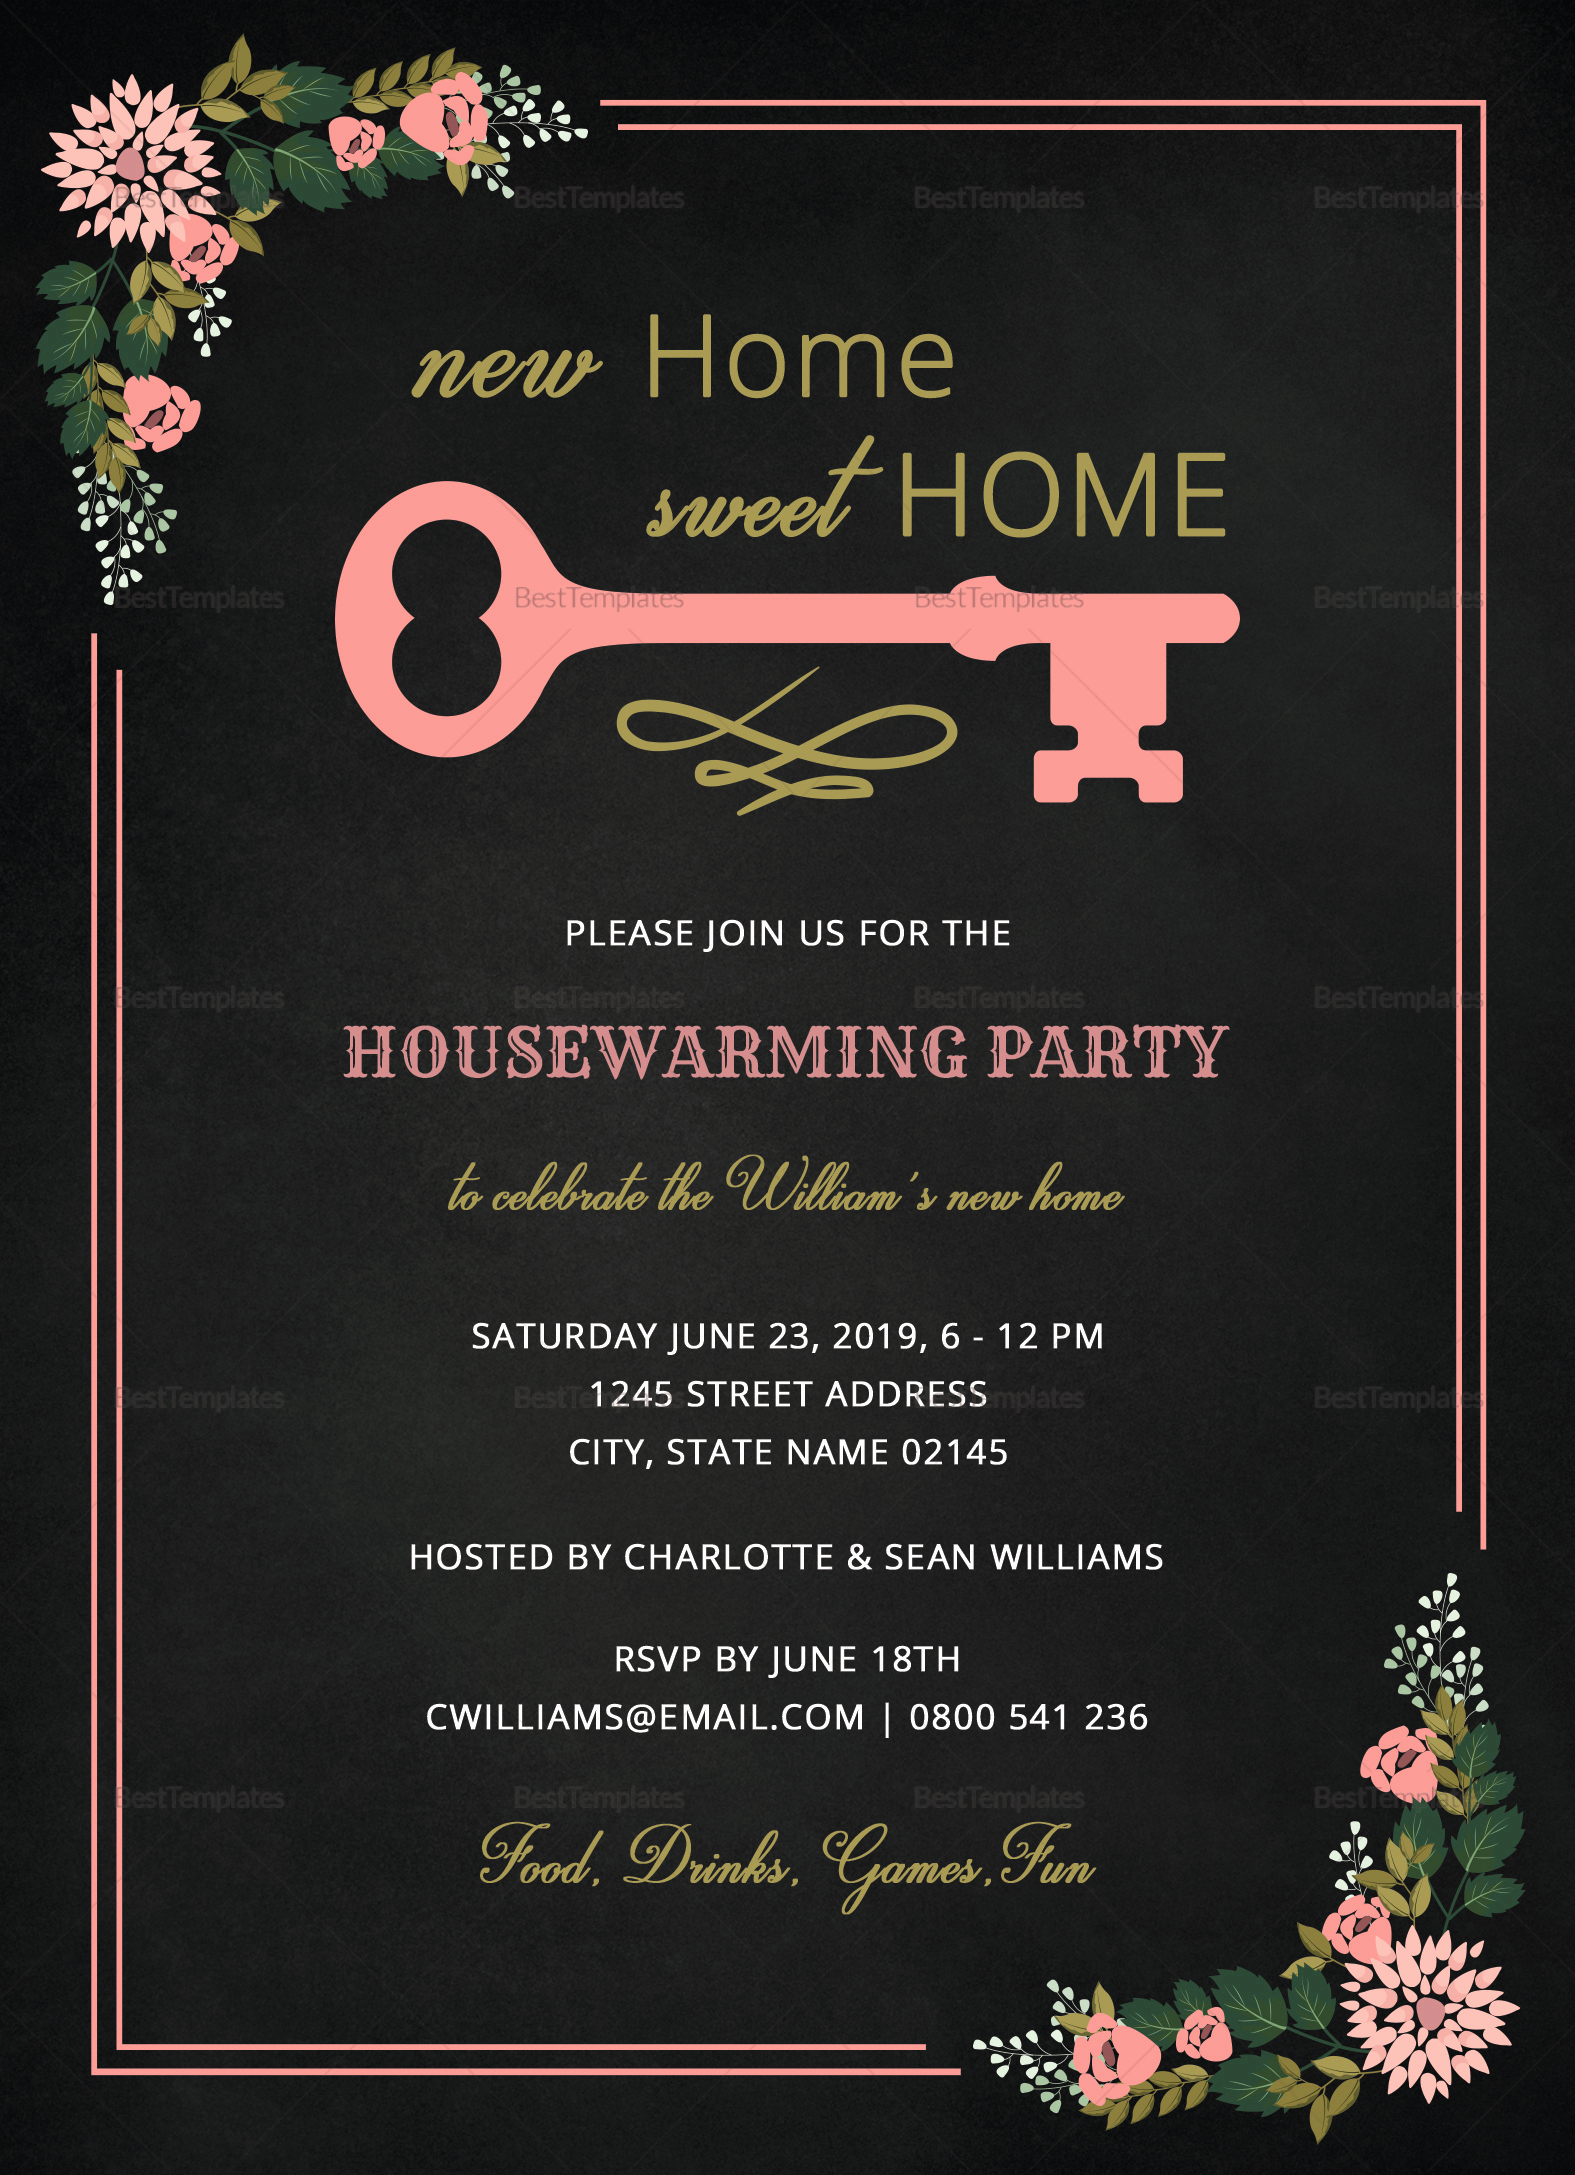 Housewarming Invitation Template Microsoft Word Fresh Chalkboard Housewarming Invitation Design Template In Word